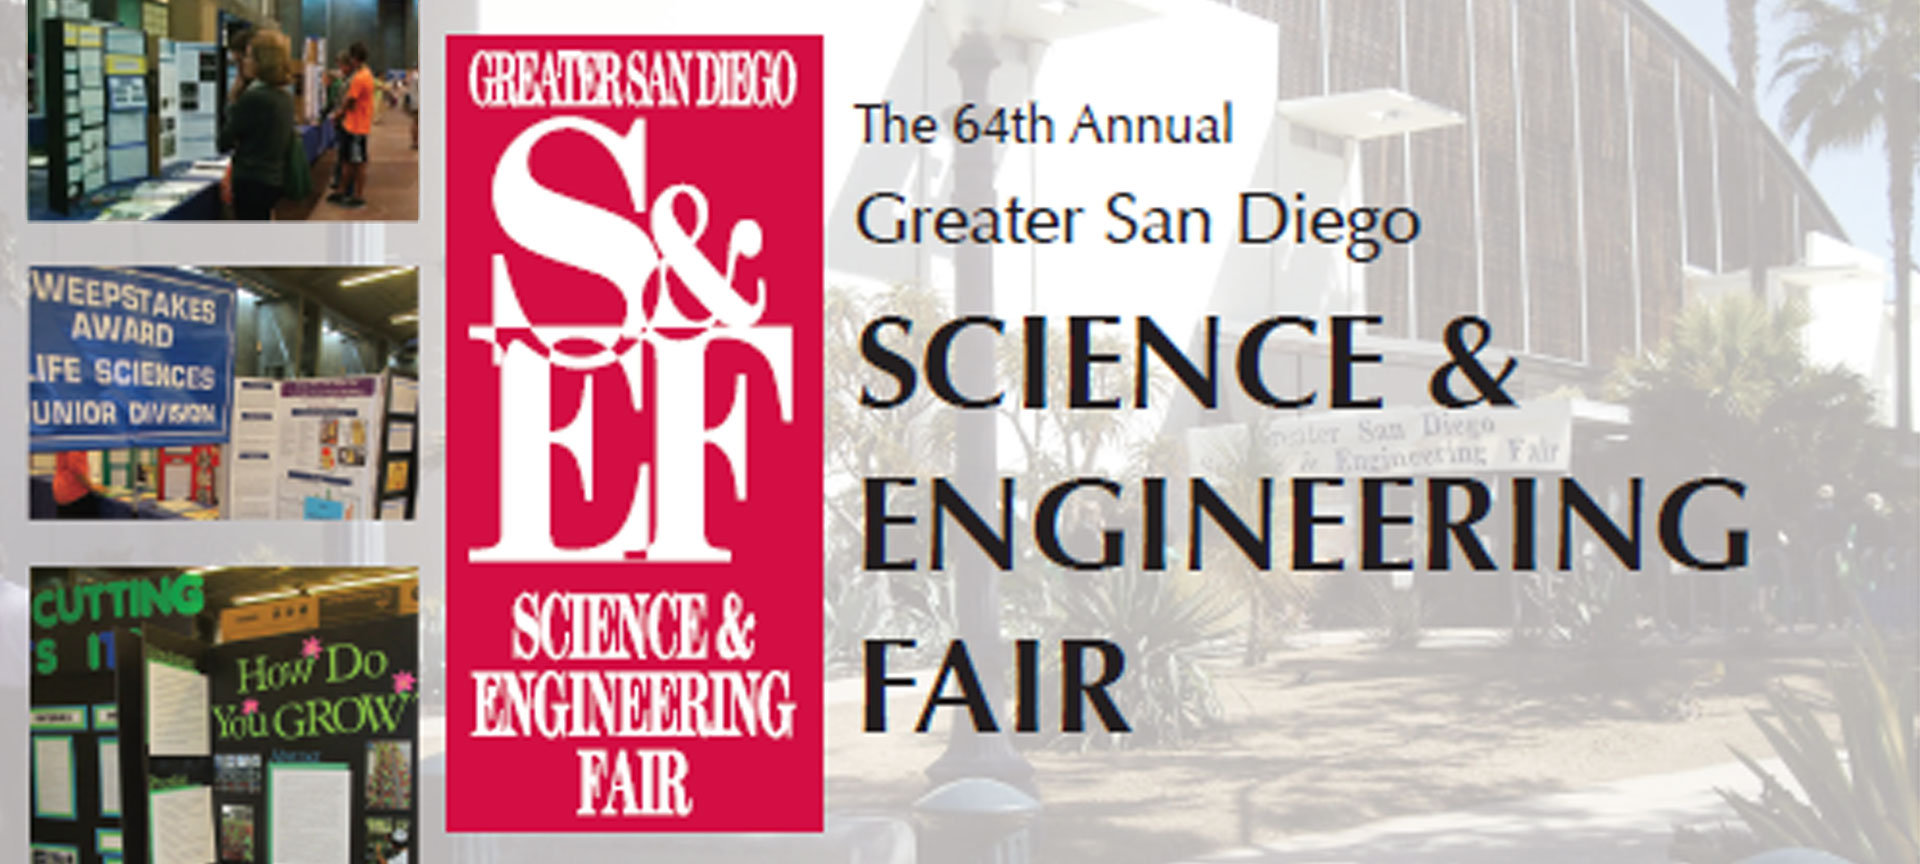 Greater San Diego Science and Engineering Fair 2018 is here!